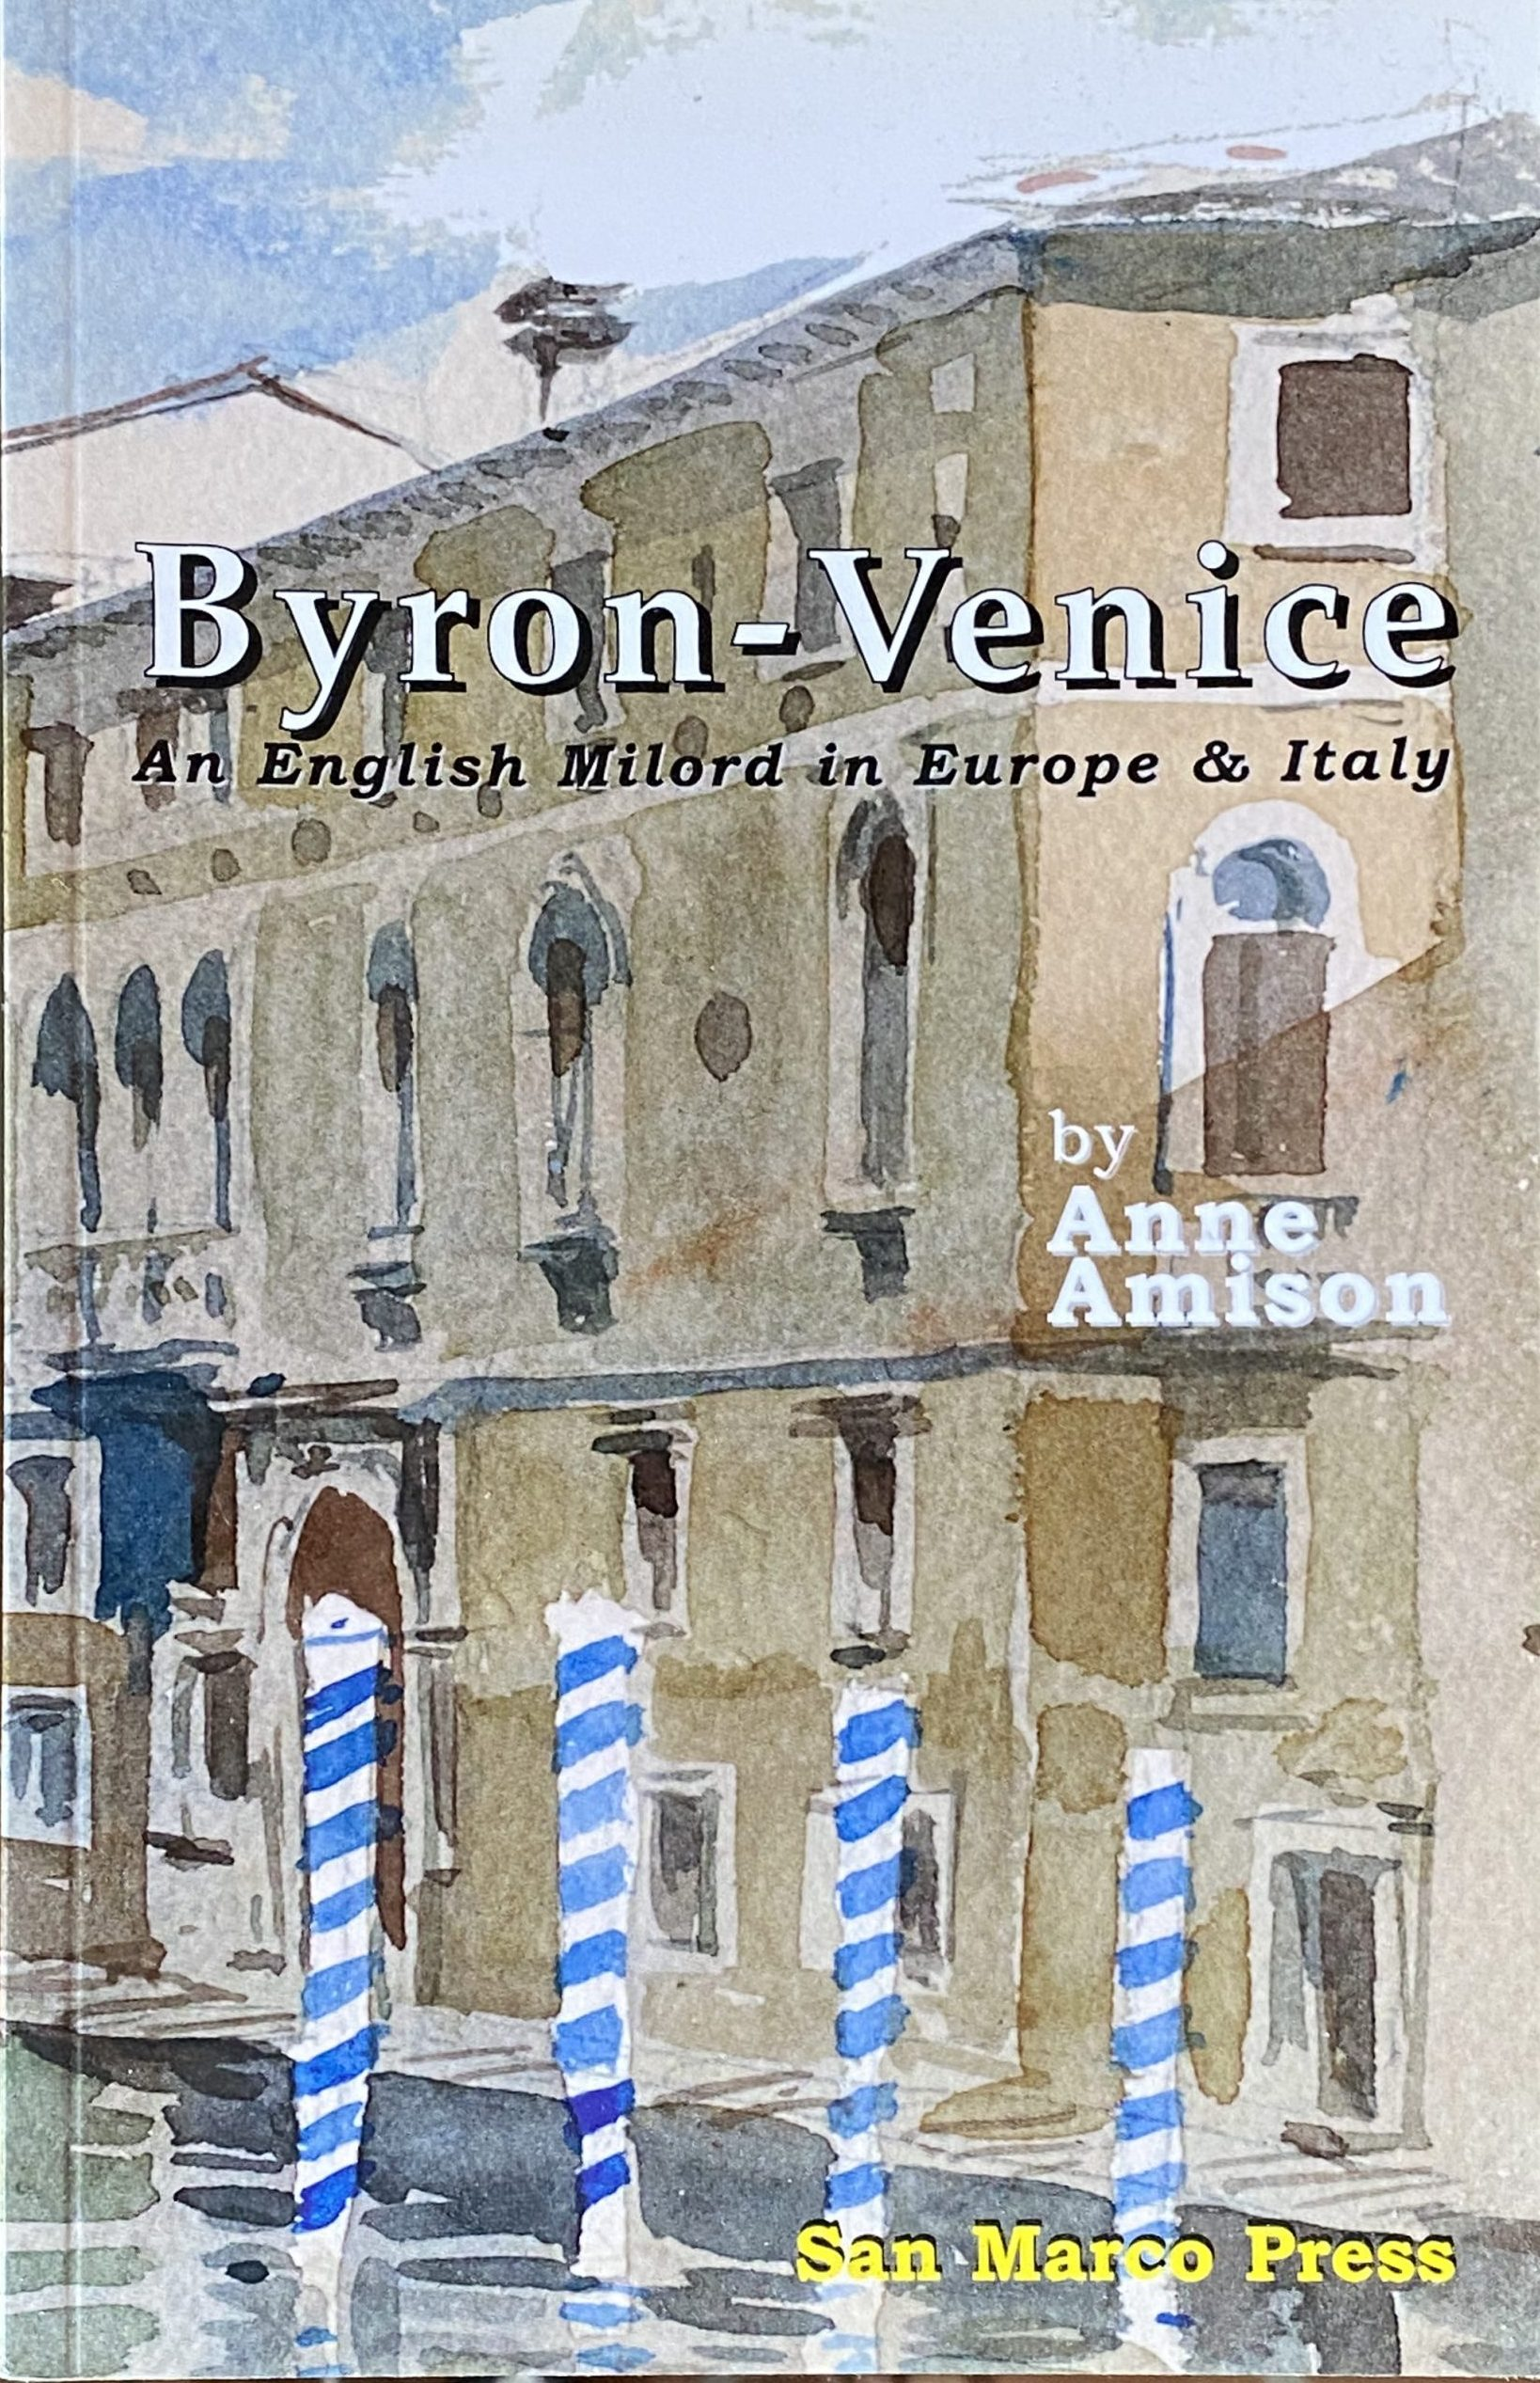 Recounting Byron's travel in Europe and Venicw